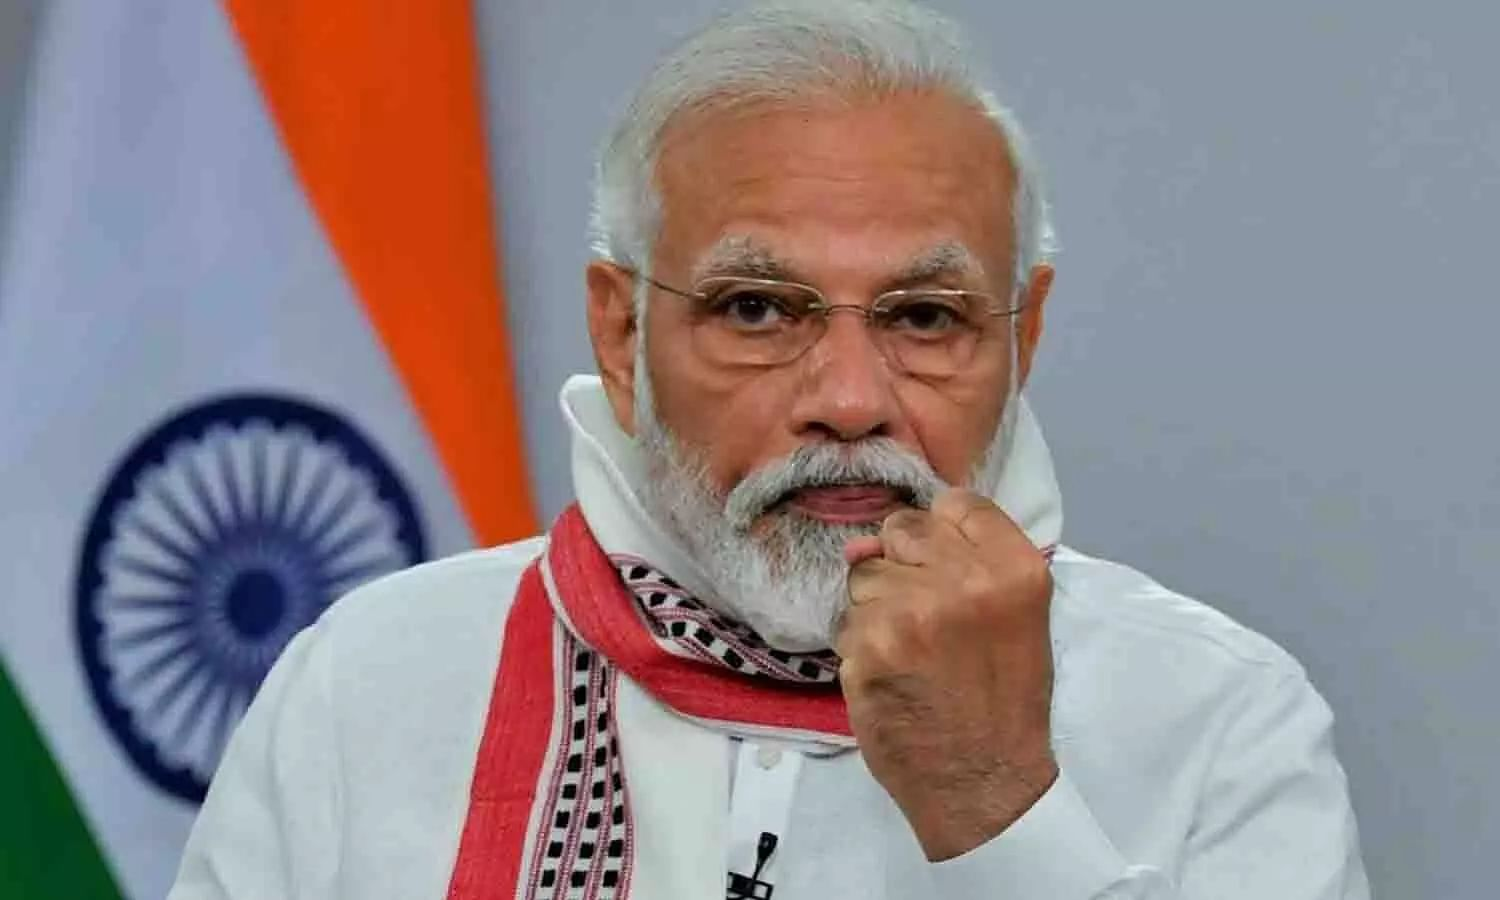 Swachhata is like a ritual in their life: PM Modi hails cleanliness culture in Northeast India